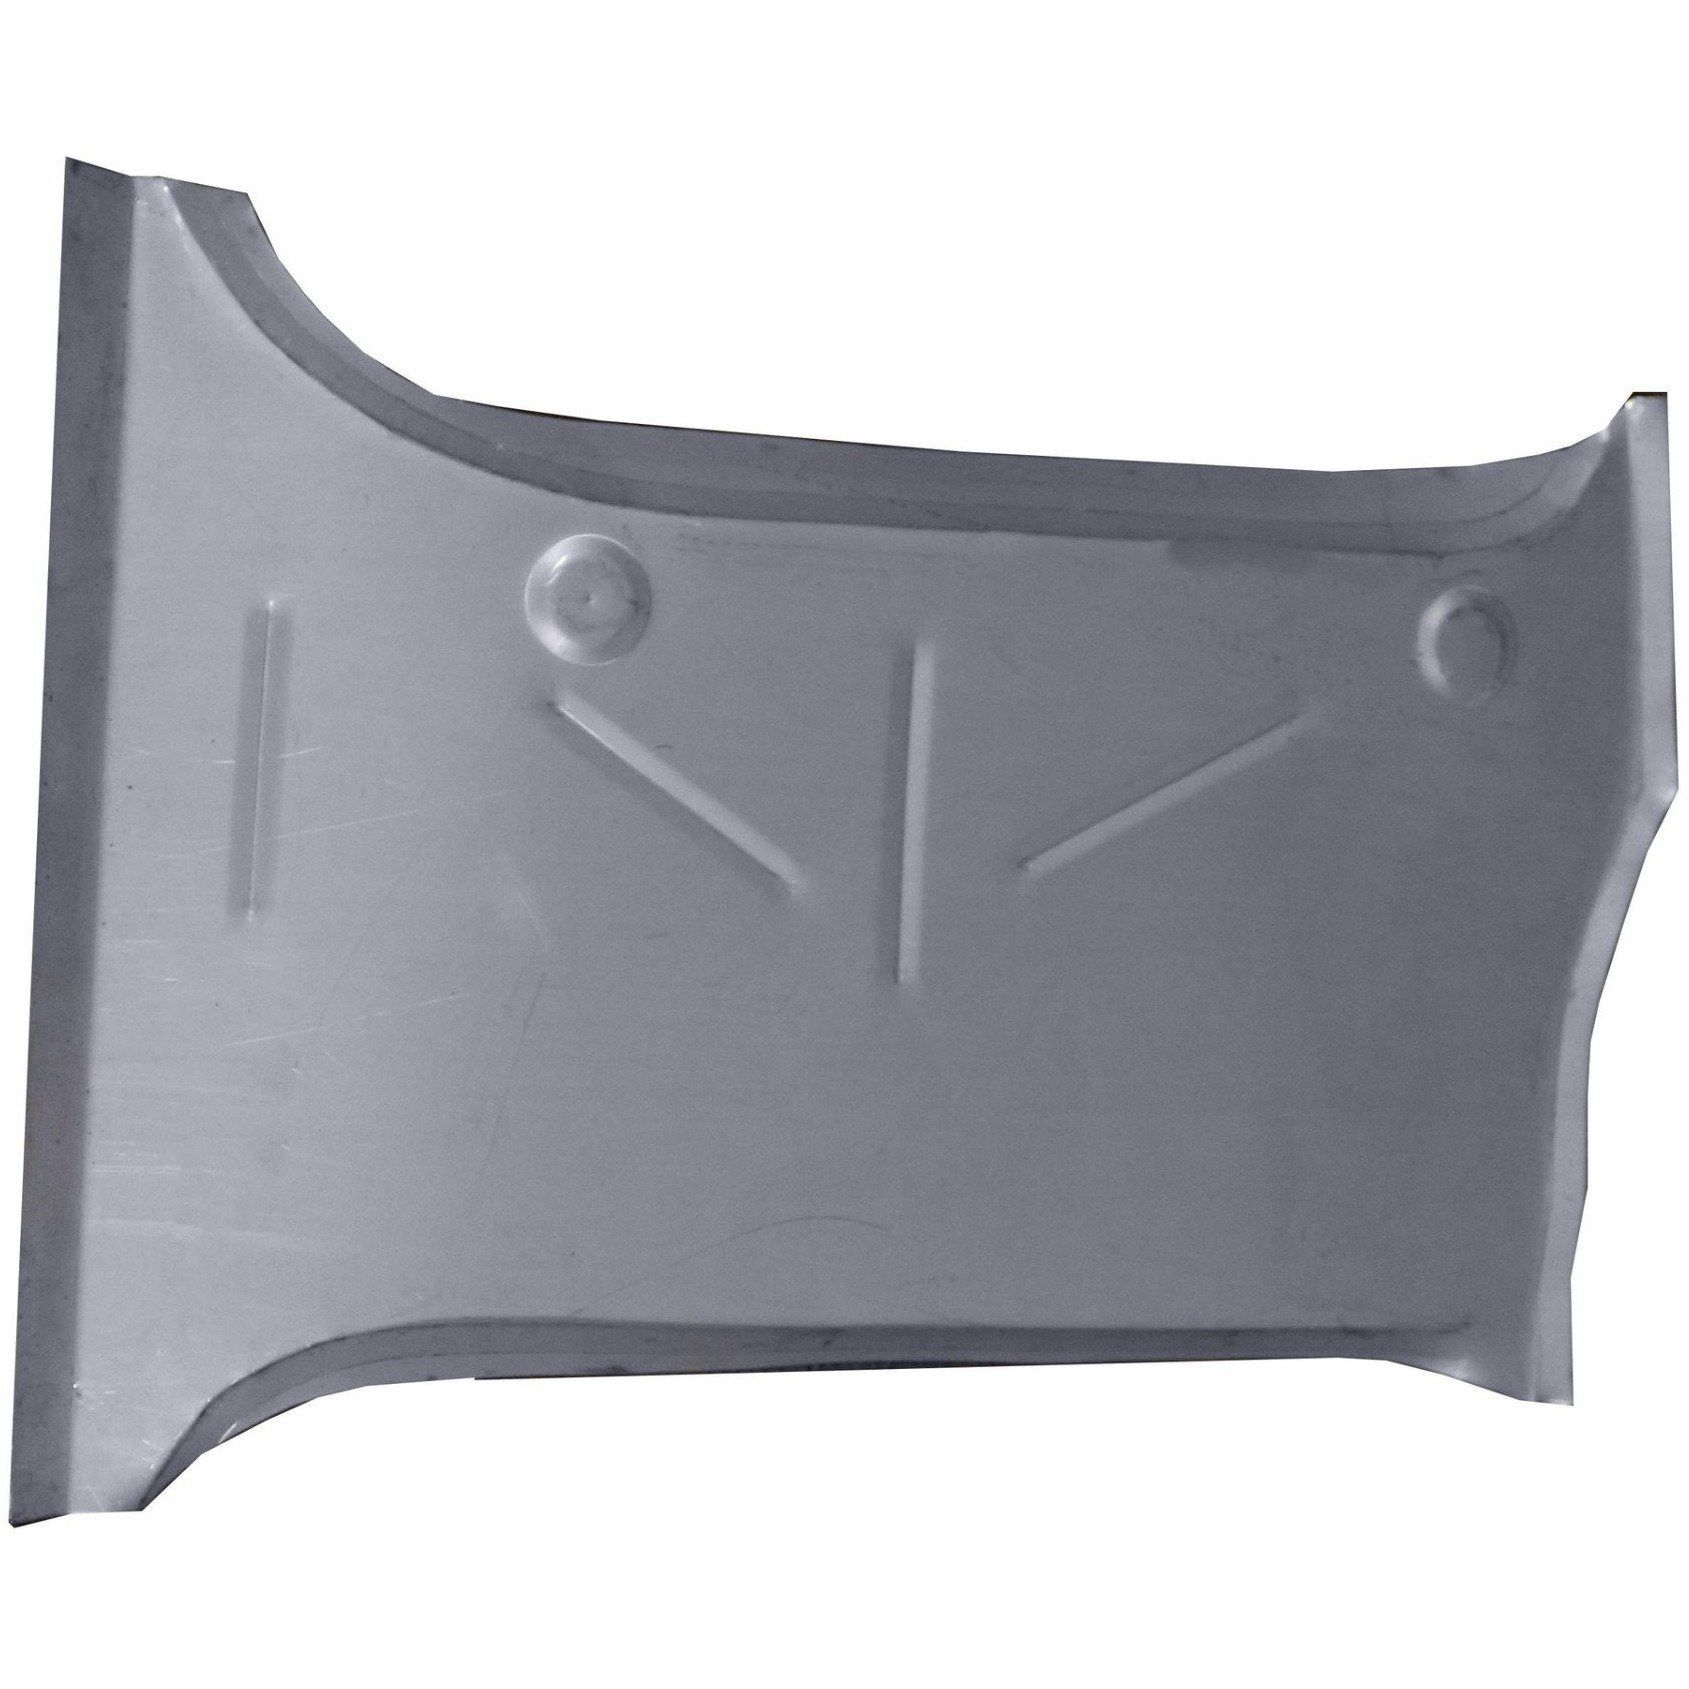 1955-1960 Alfa Romeo Giulietta Spider 750 Floor Pan Under